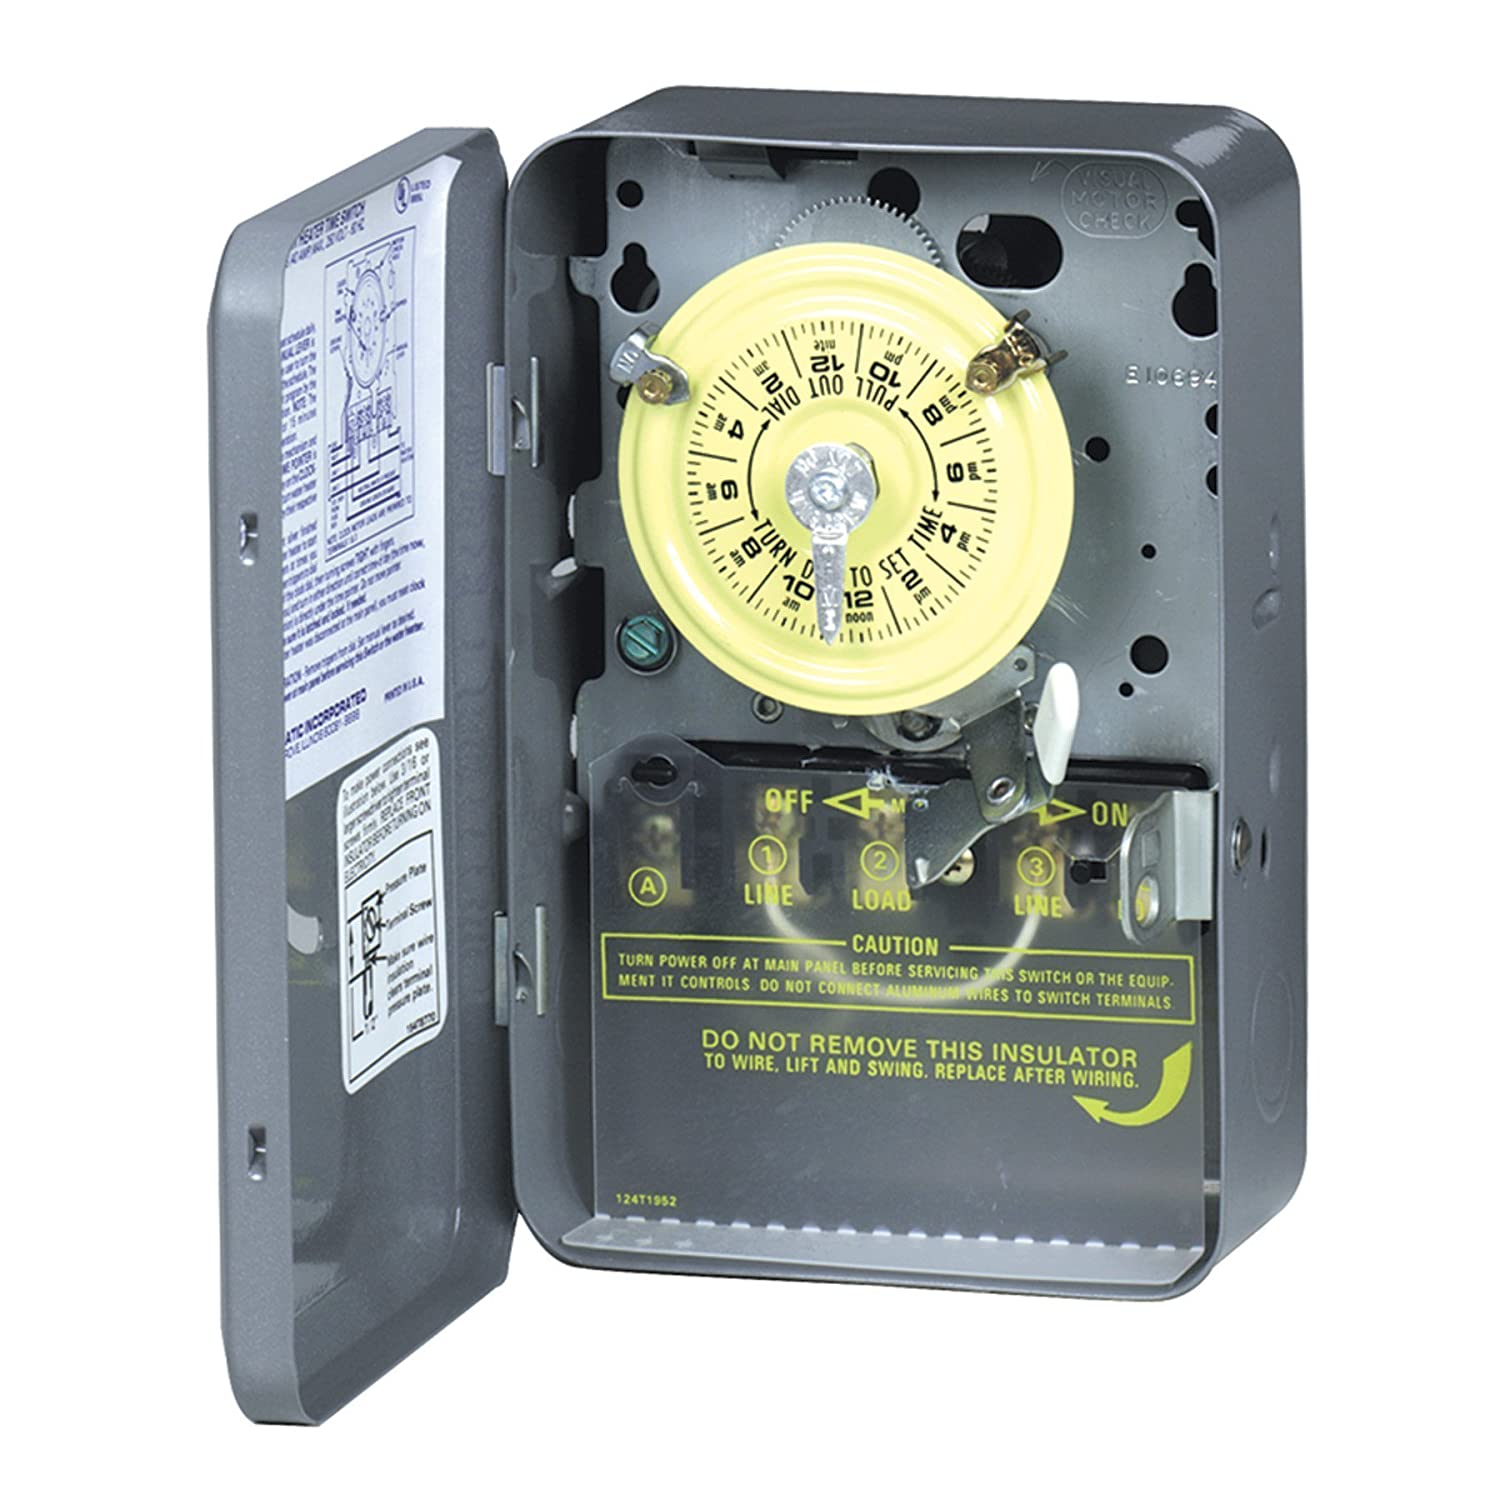 81X%2B6BHmK7S._SL1500_ intermatic eh10 120 volt electronic water heater timer wall  at gsmx.co